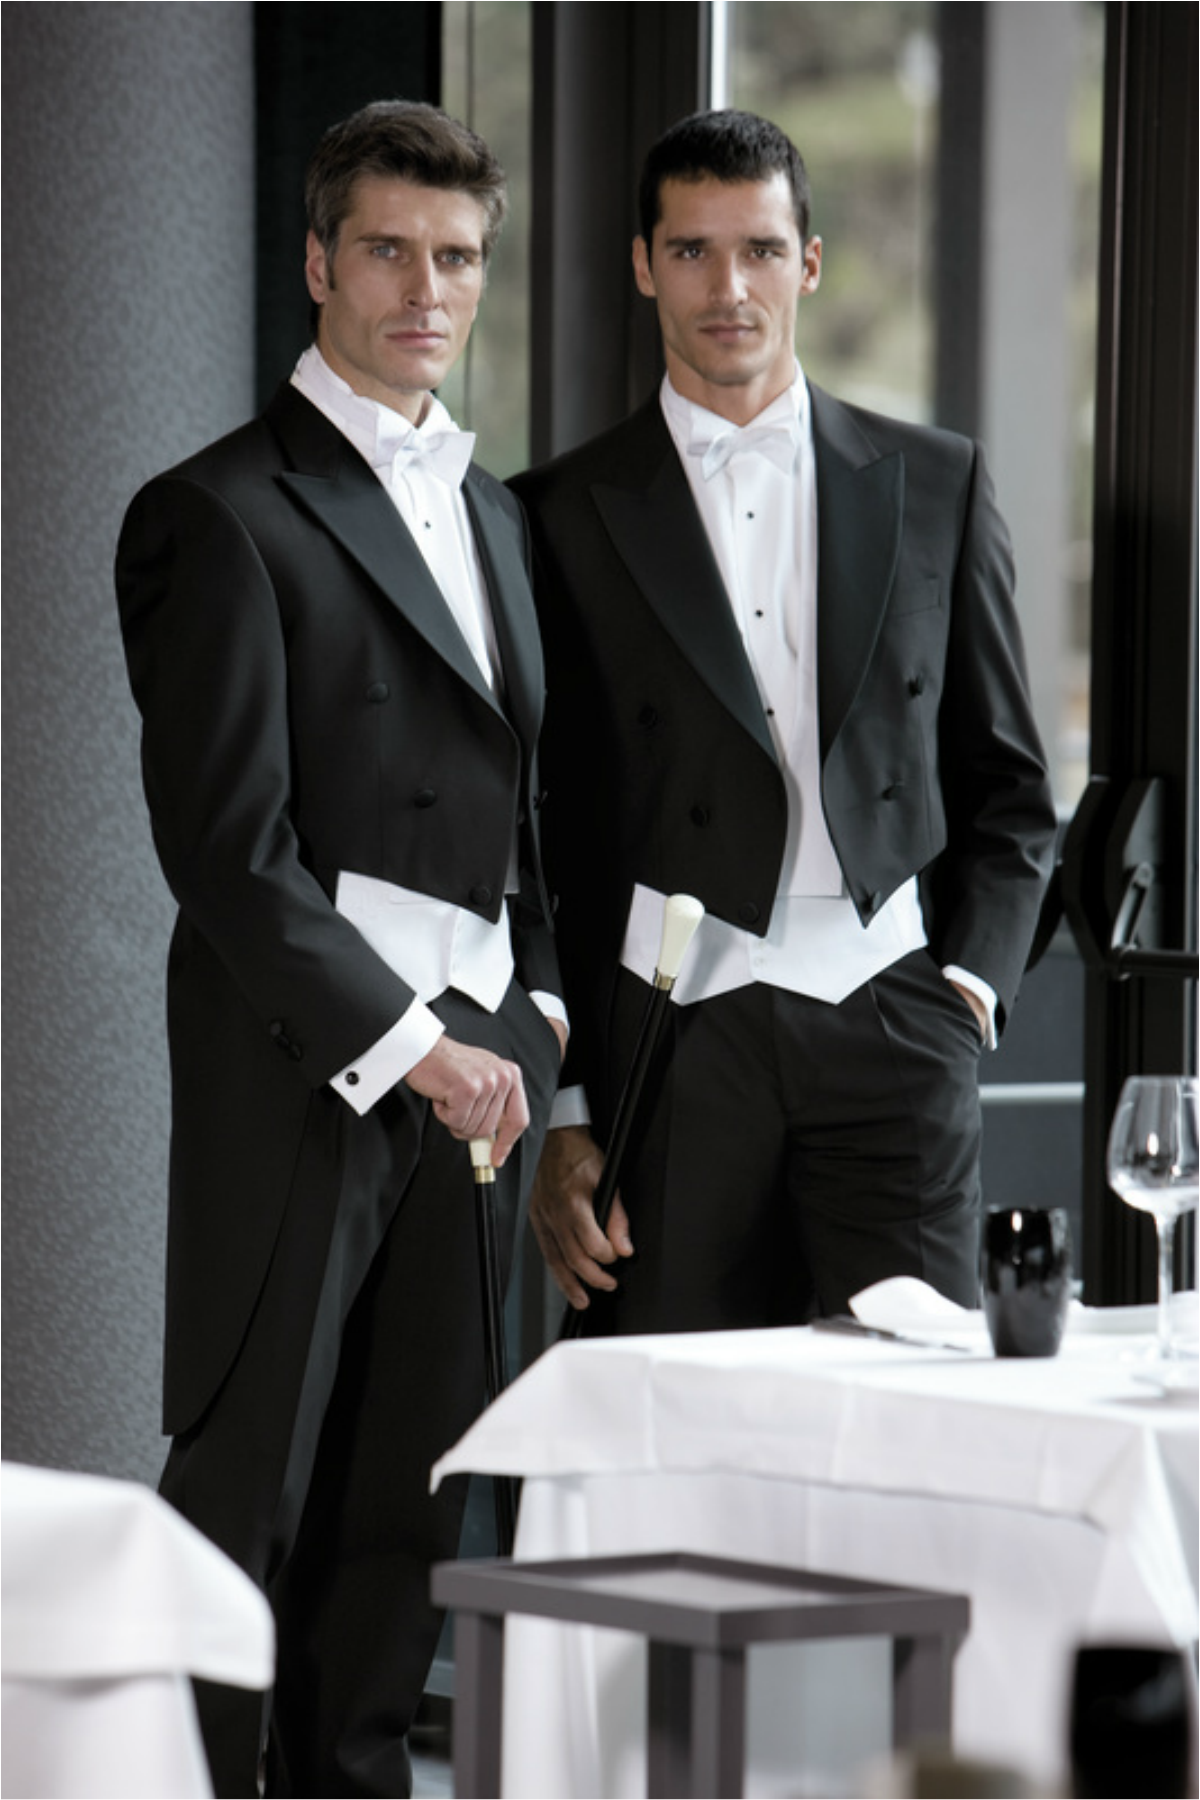 Full Evening Dress Tailcoat, Marcella Waistcoat, Shirt and Bow. Hire from £140. Buy from £299